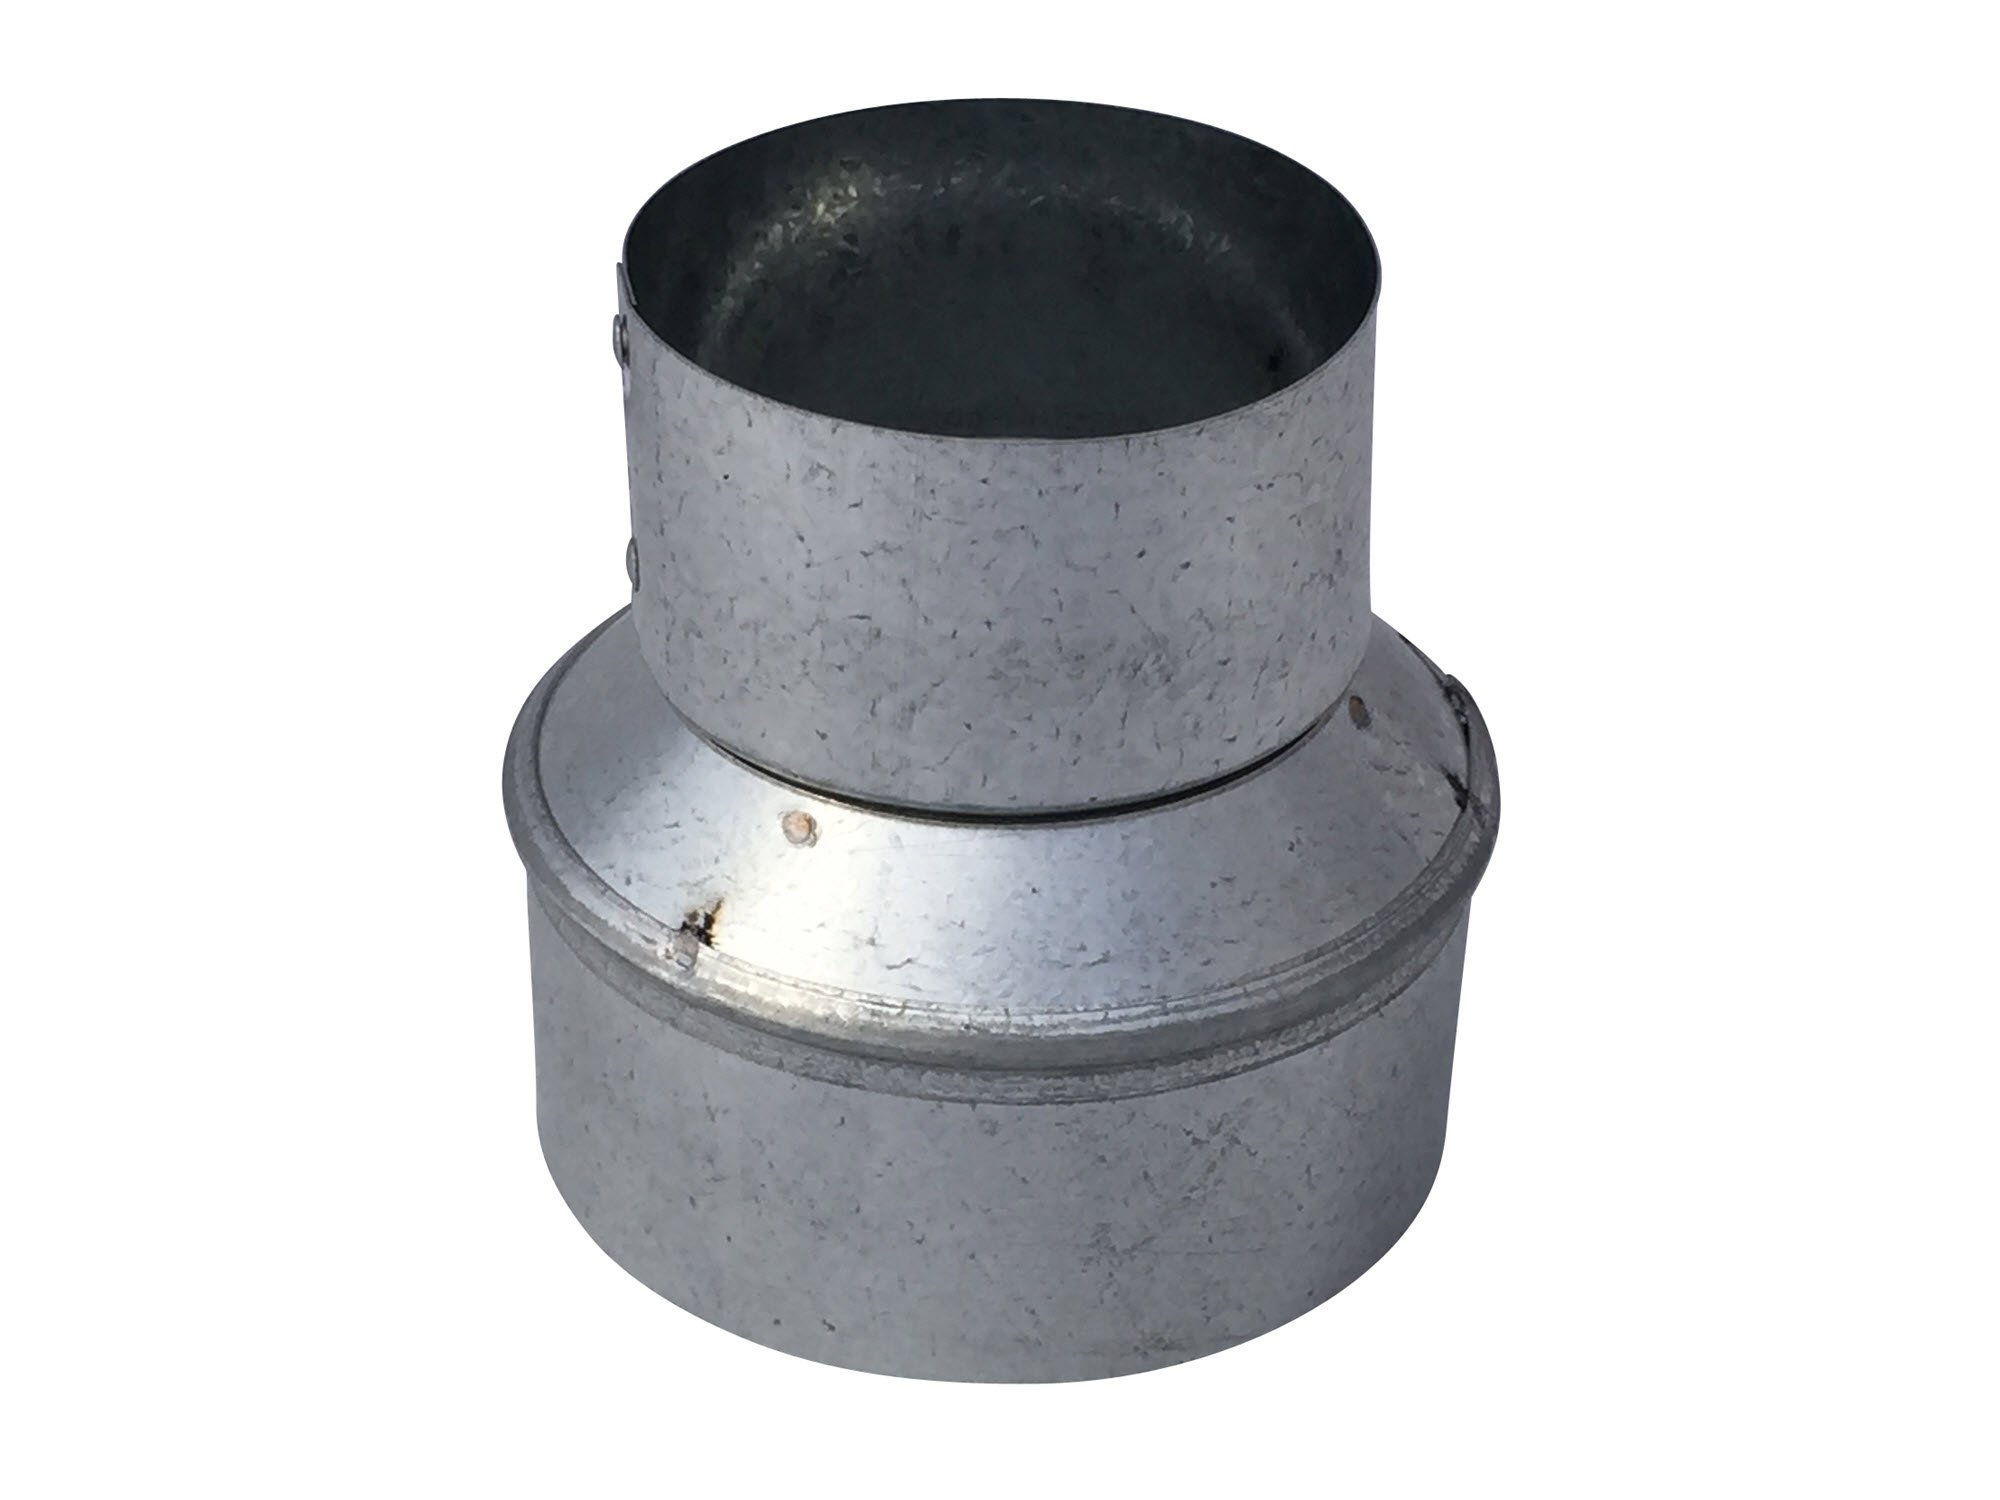 4x3 Inch Tapered Reducer Galvanized Steel - Vent Works